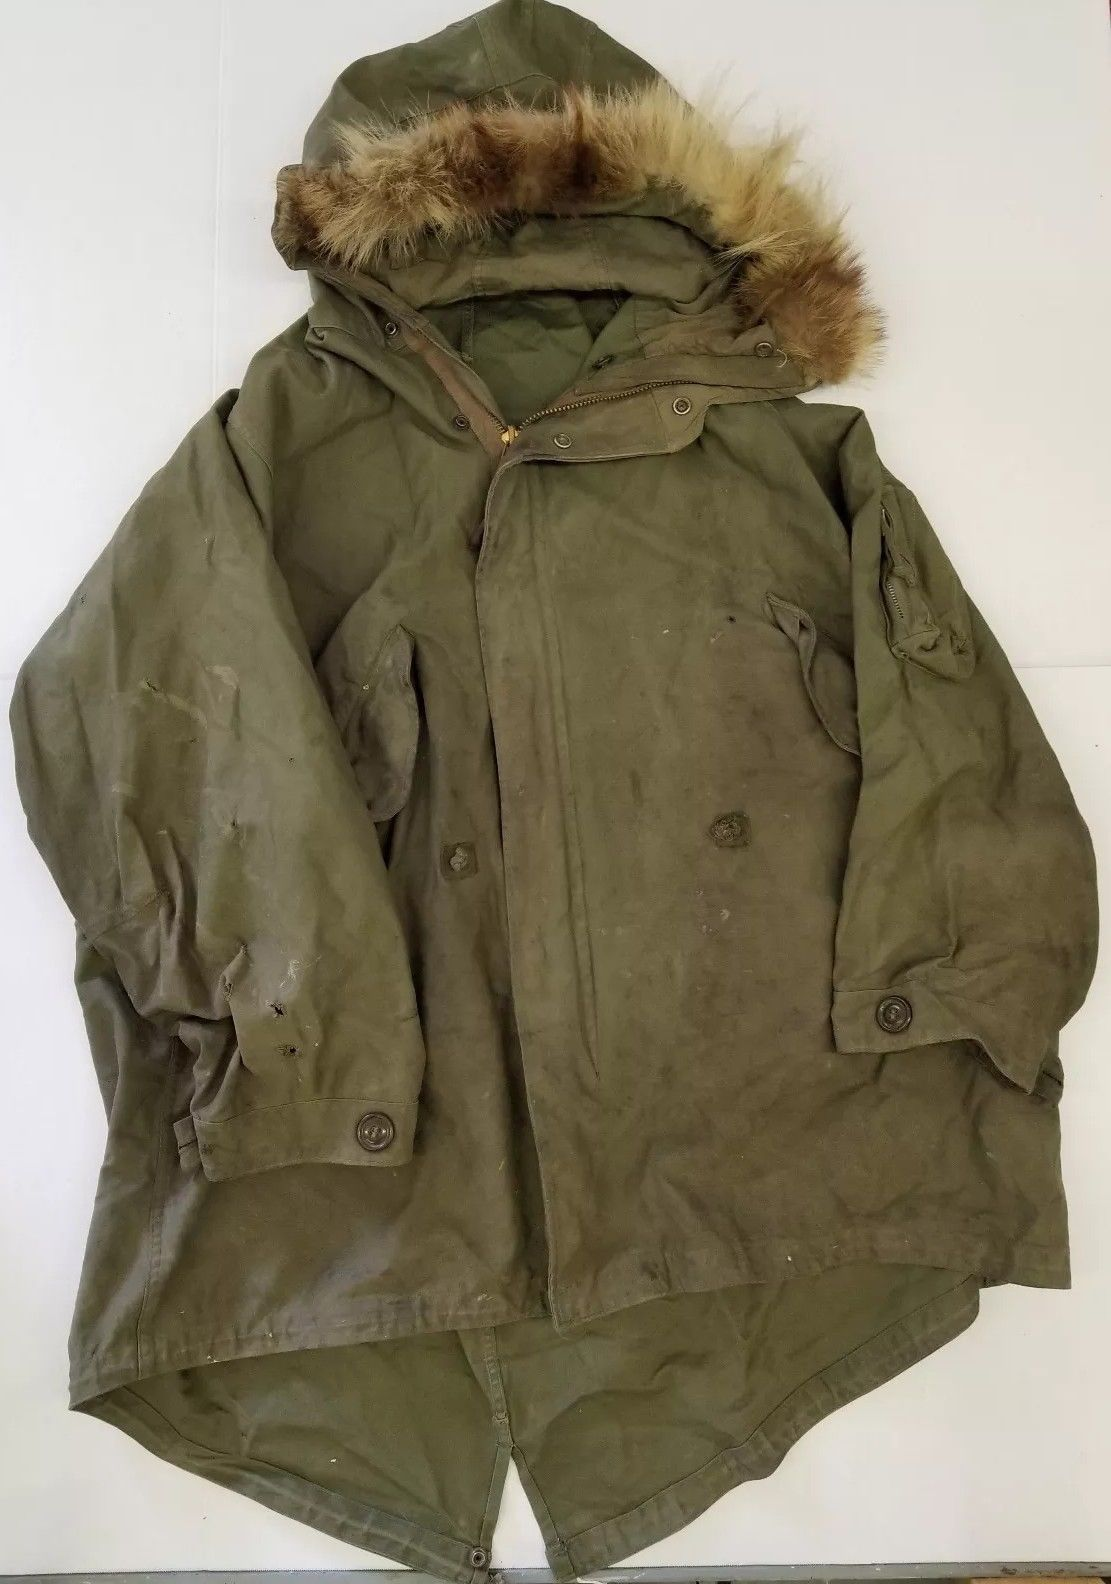 98dcfc6c1b6c25 VINTAGE WWII US Army Mountain Winter Hooded Field Parka Jacket Military  Surplus - $149.00. Coat